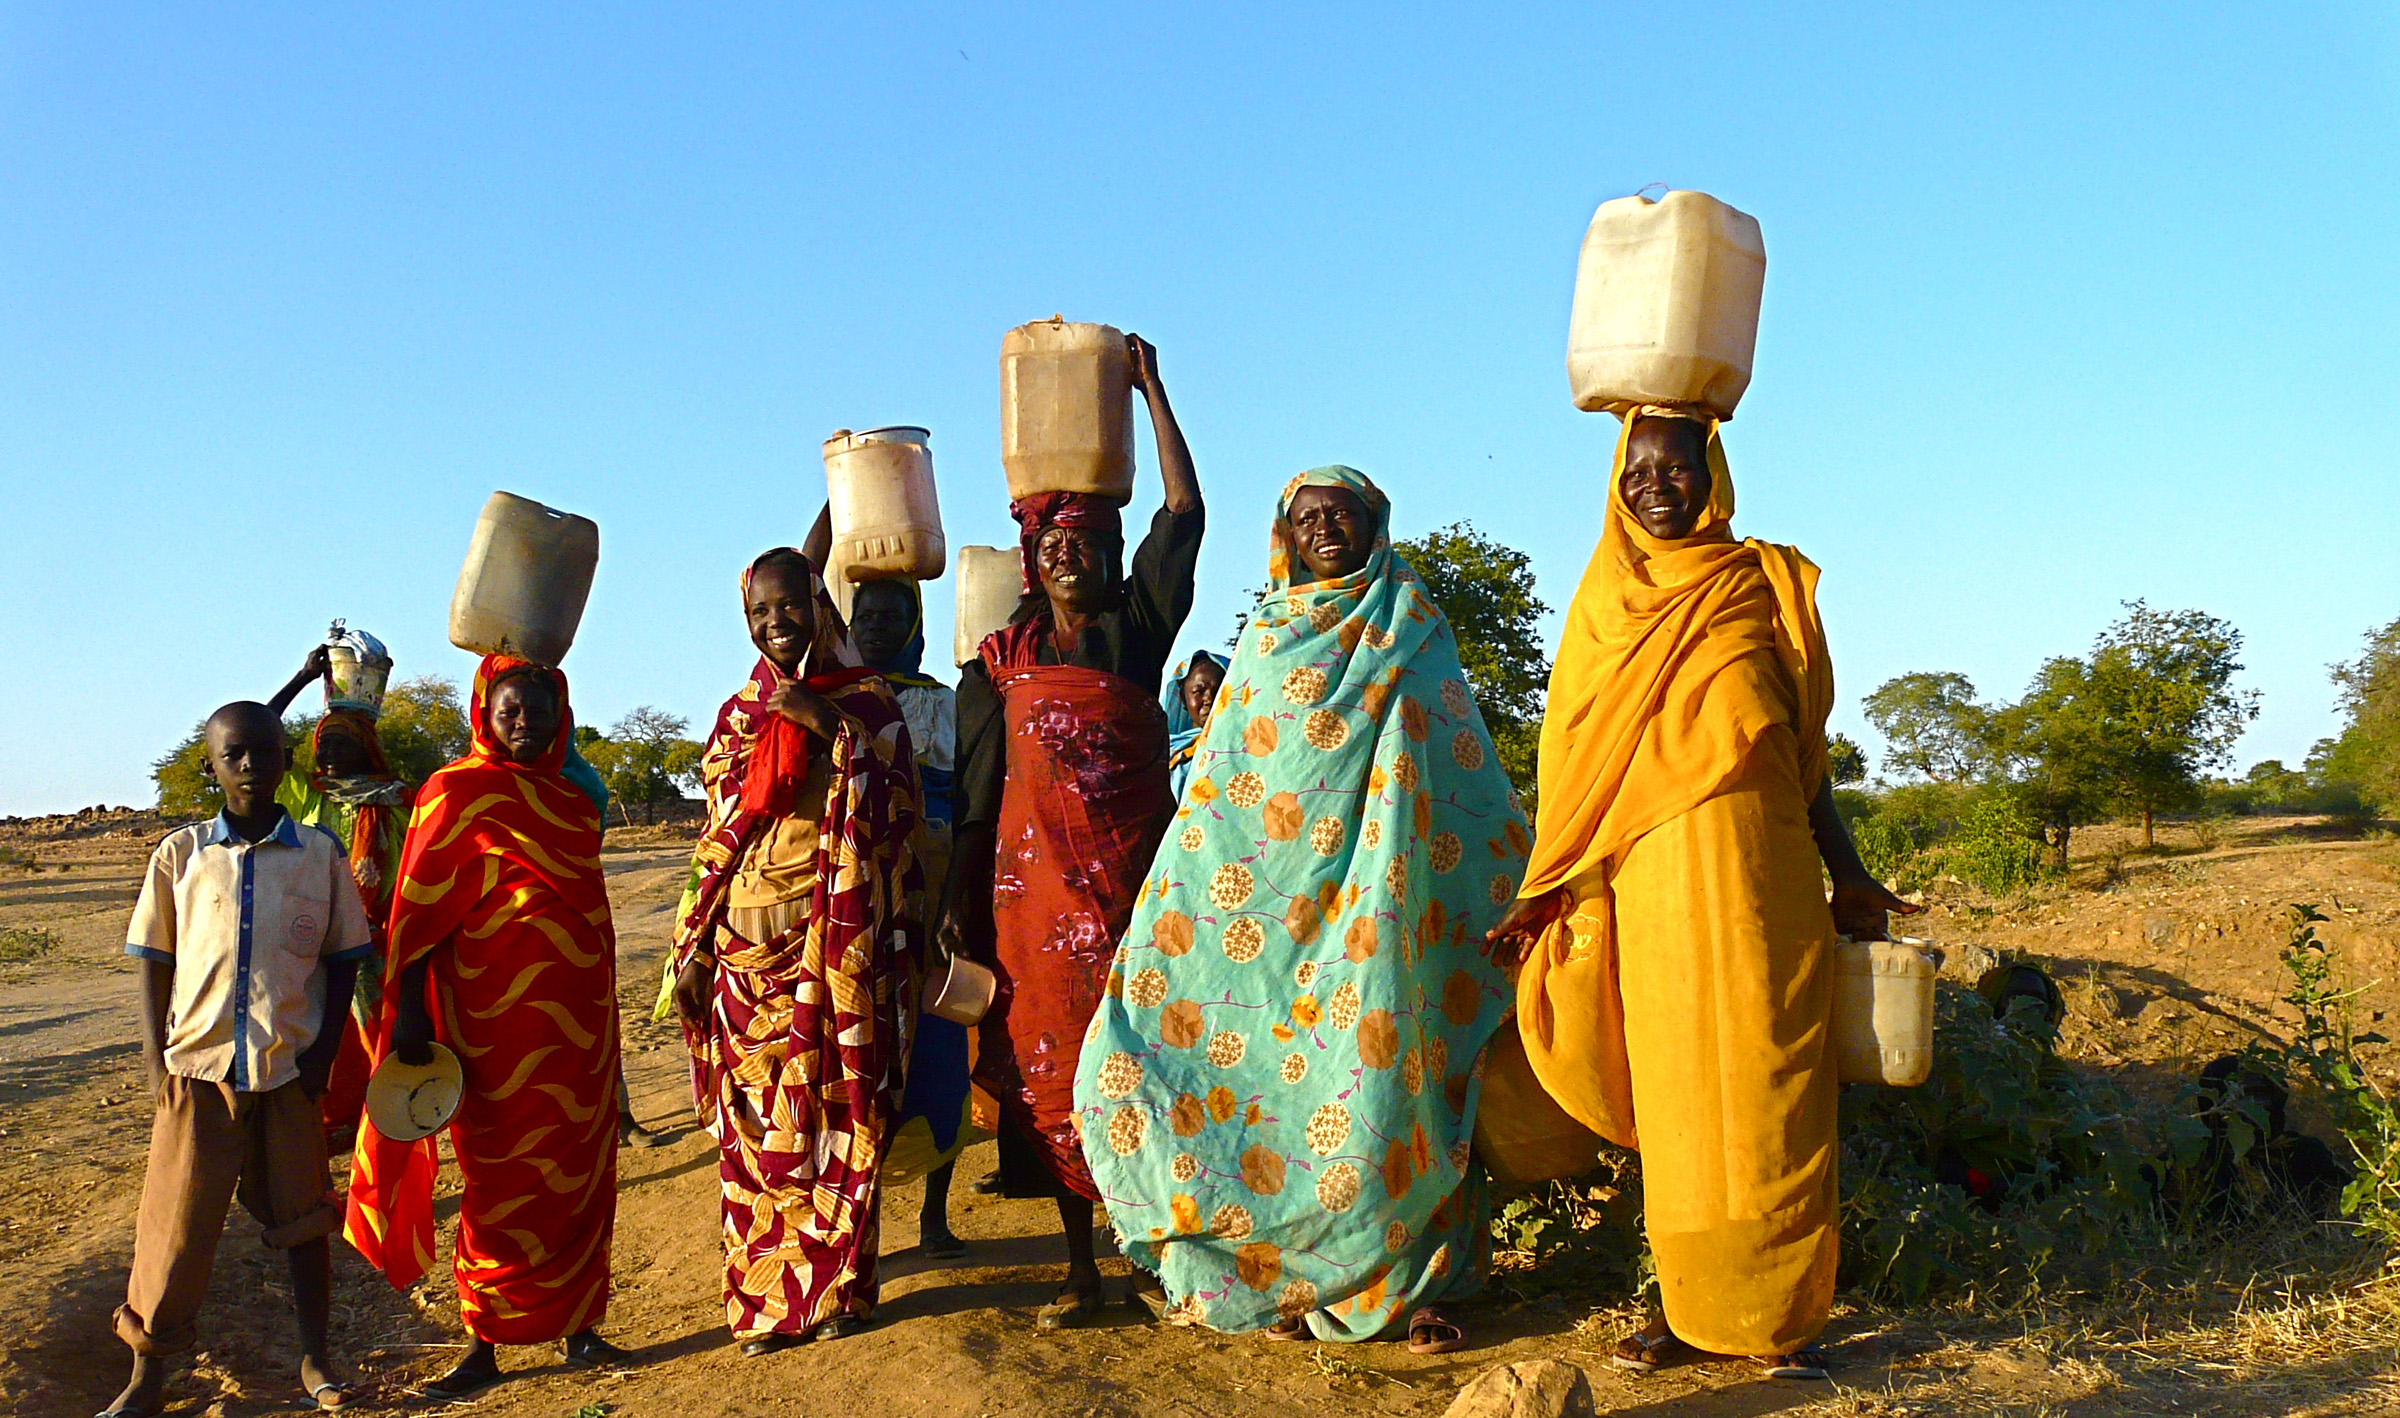 Baggara women carring water in Sudan - by Rita Willaert